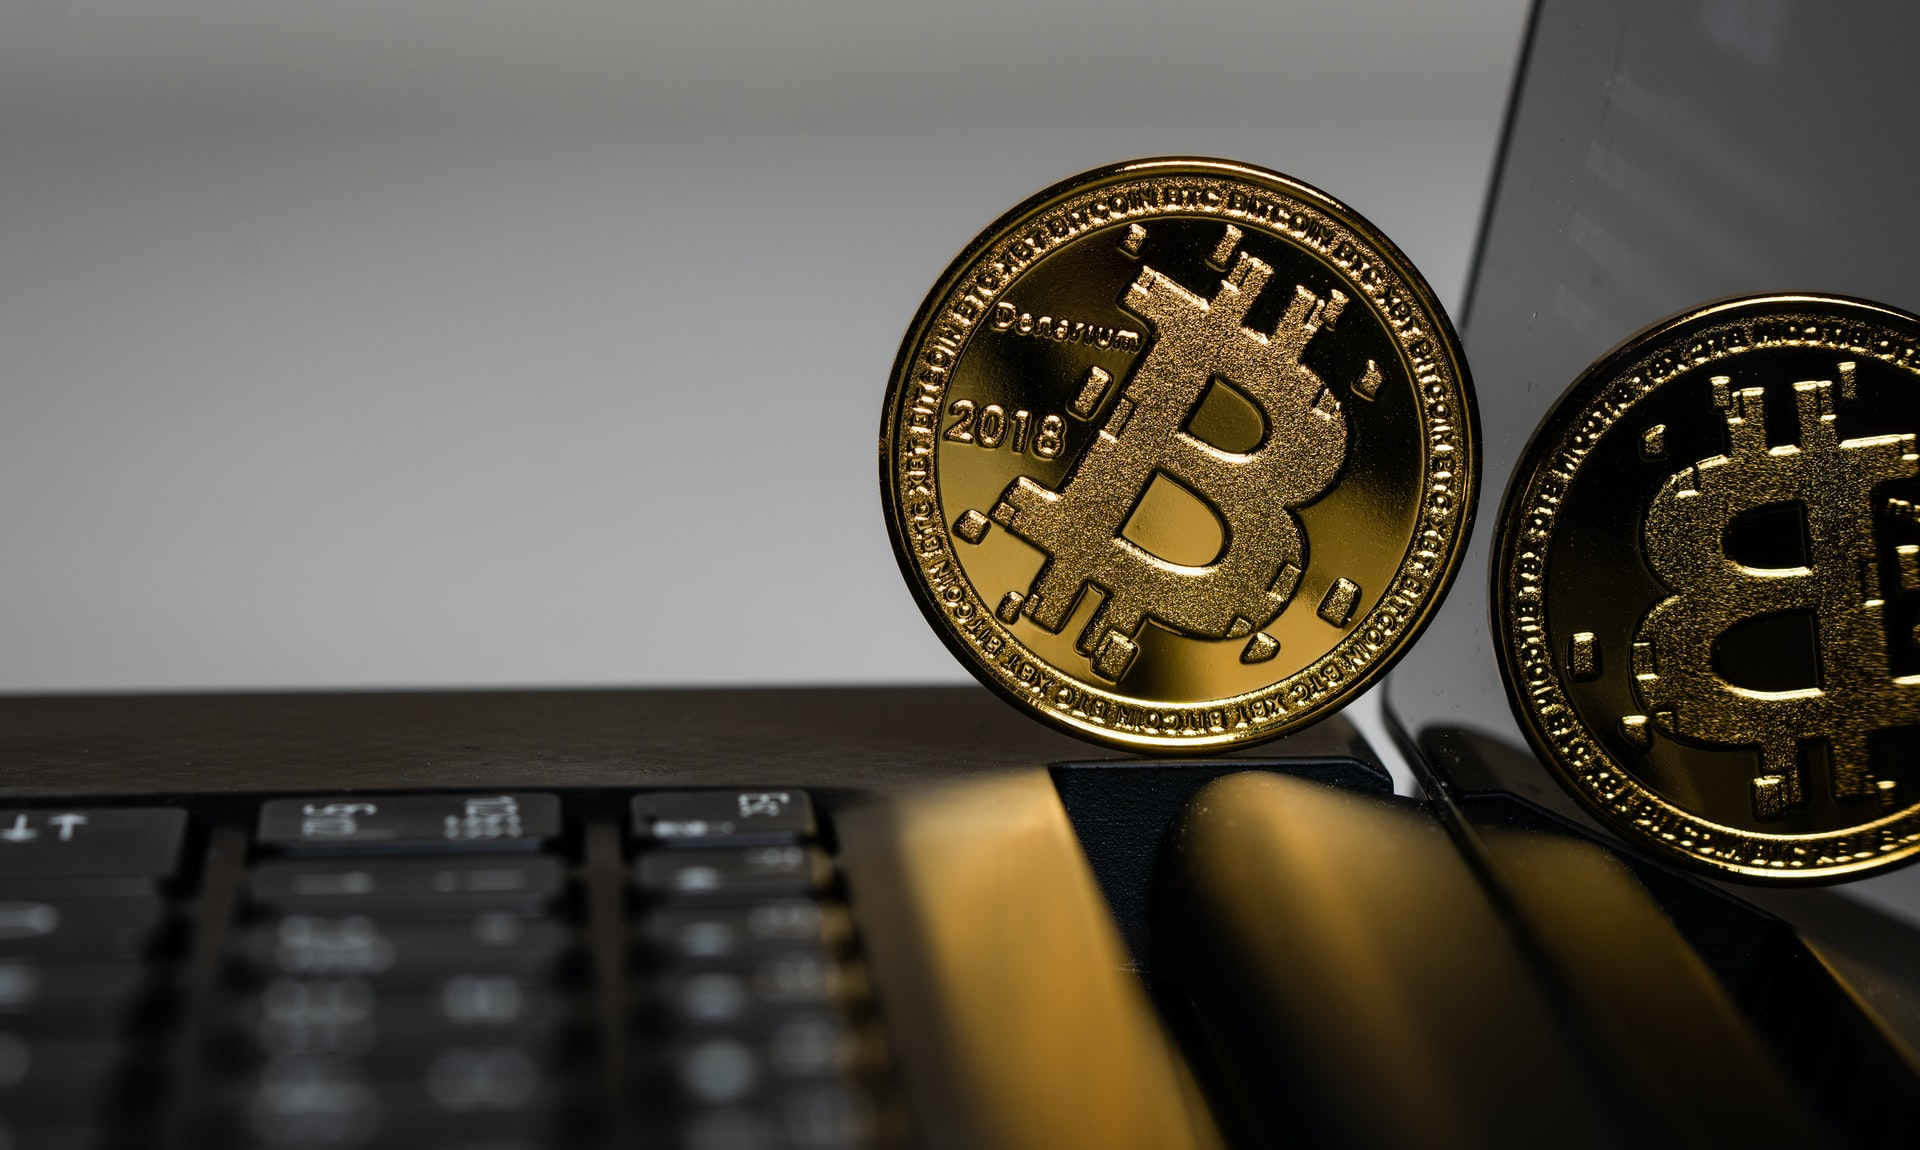 Bitcoin Bounces Higher as Institutions and Silicon Valley Stoke Crypto Adoption